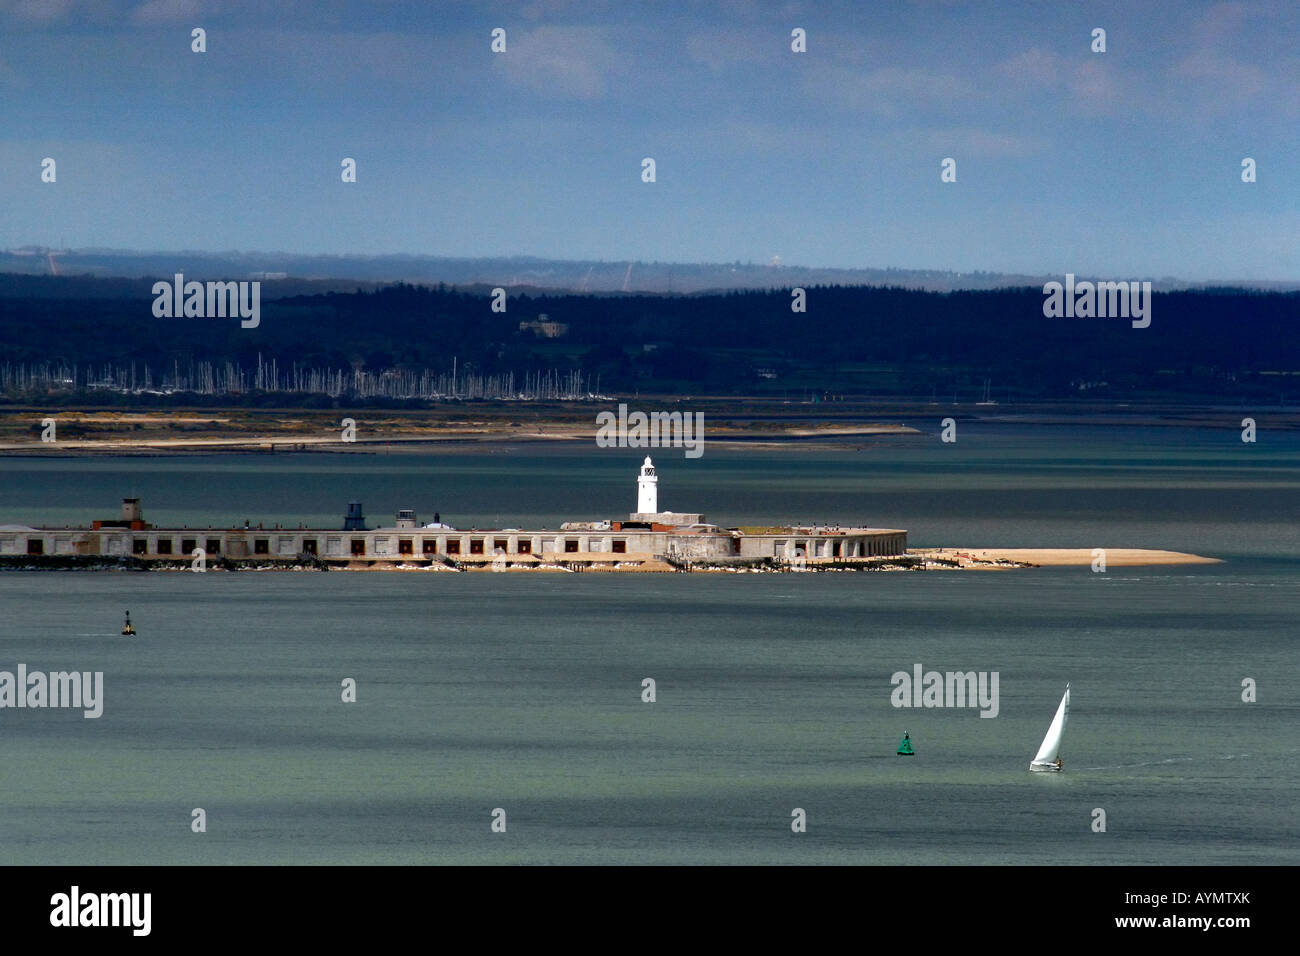 A view of the Solent from the Needles showing Hurst Castle and the Lymington river and marina in the background - Stock Image